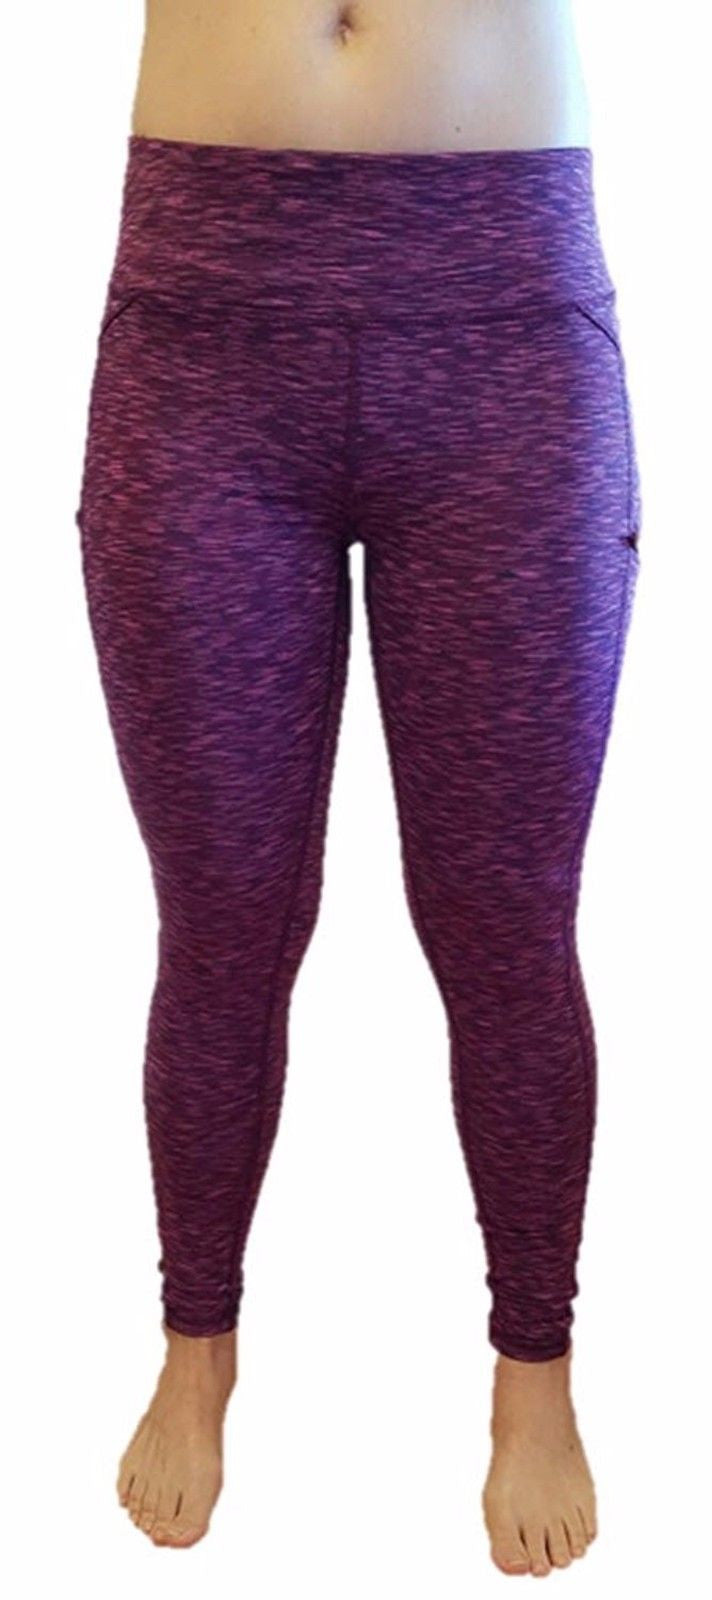 Z by Zobha Womens Full Length The Outsider Active Leggings, Beet Root Space Dye